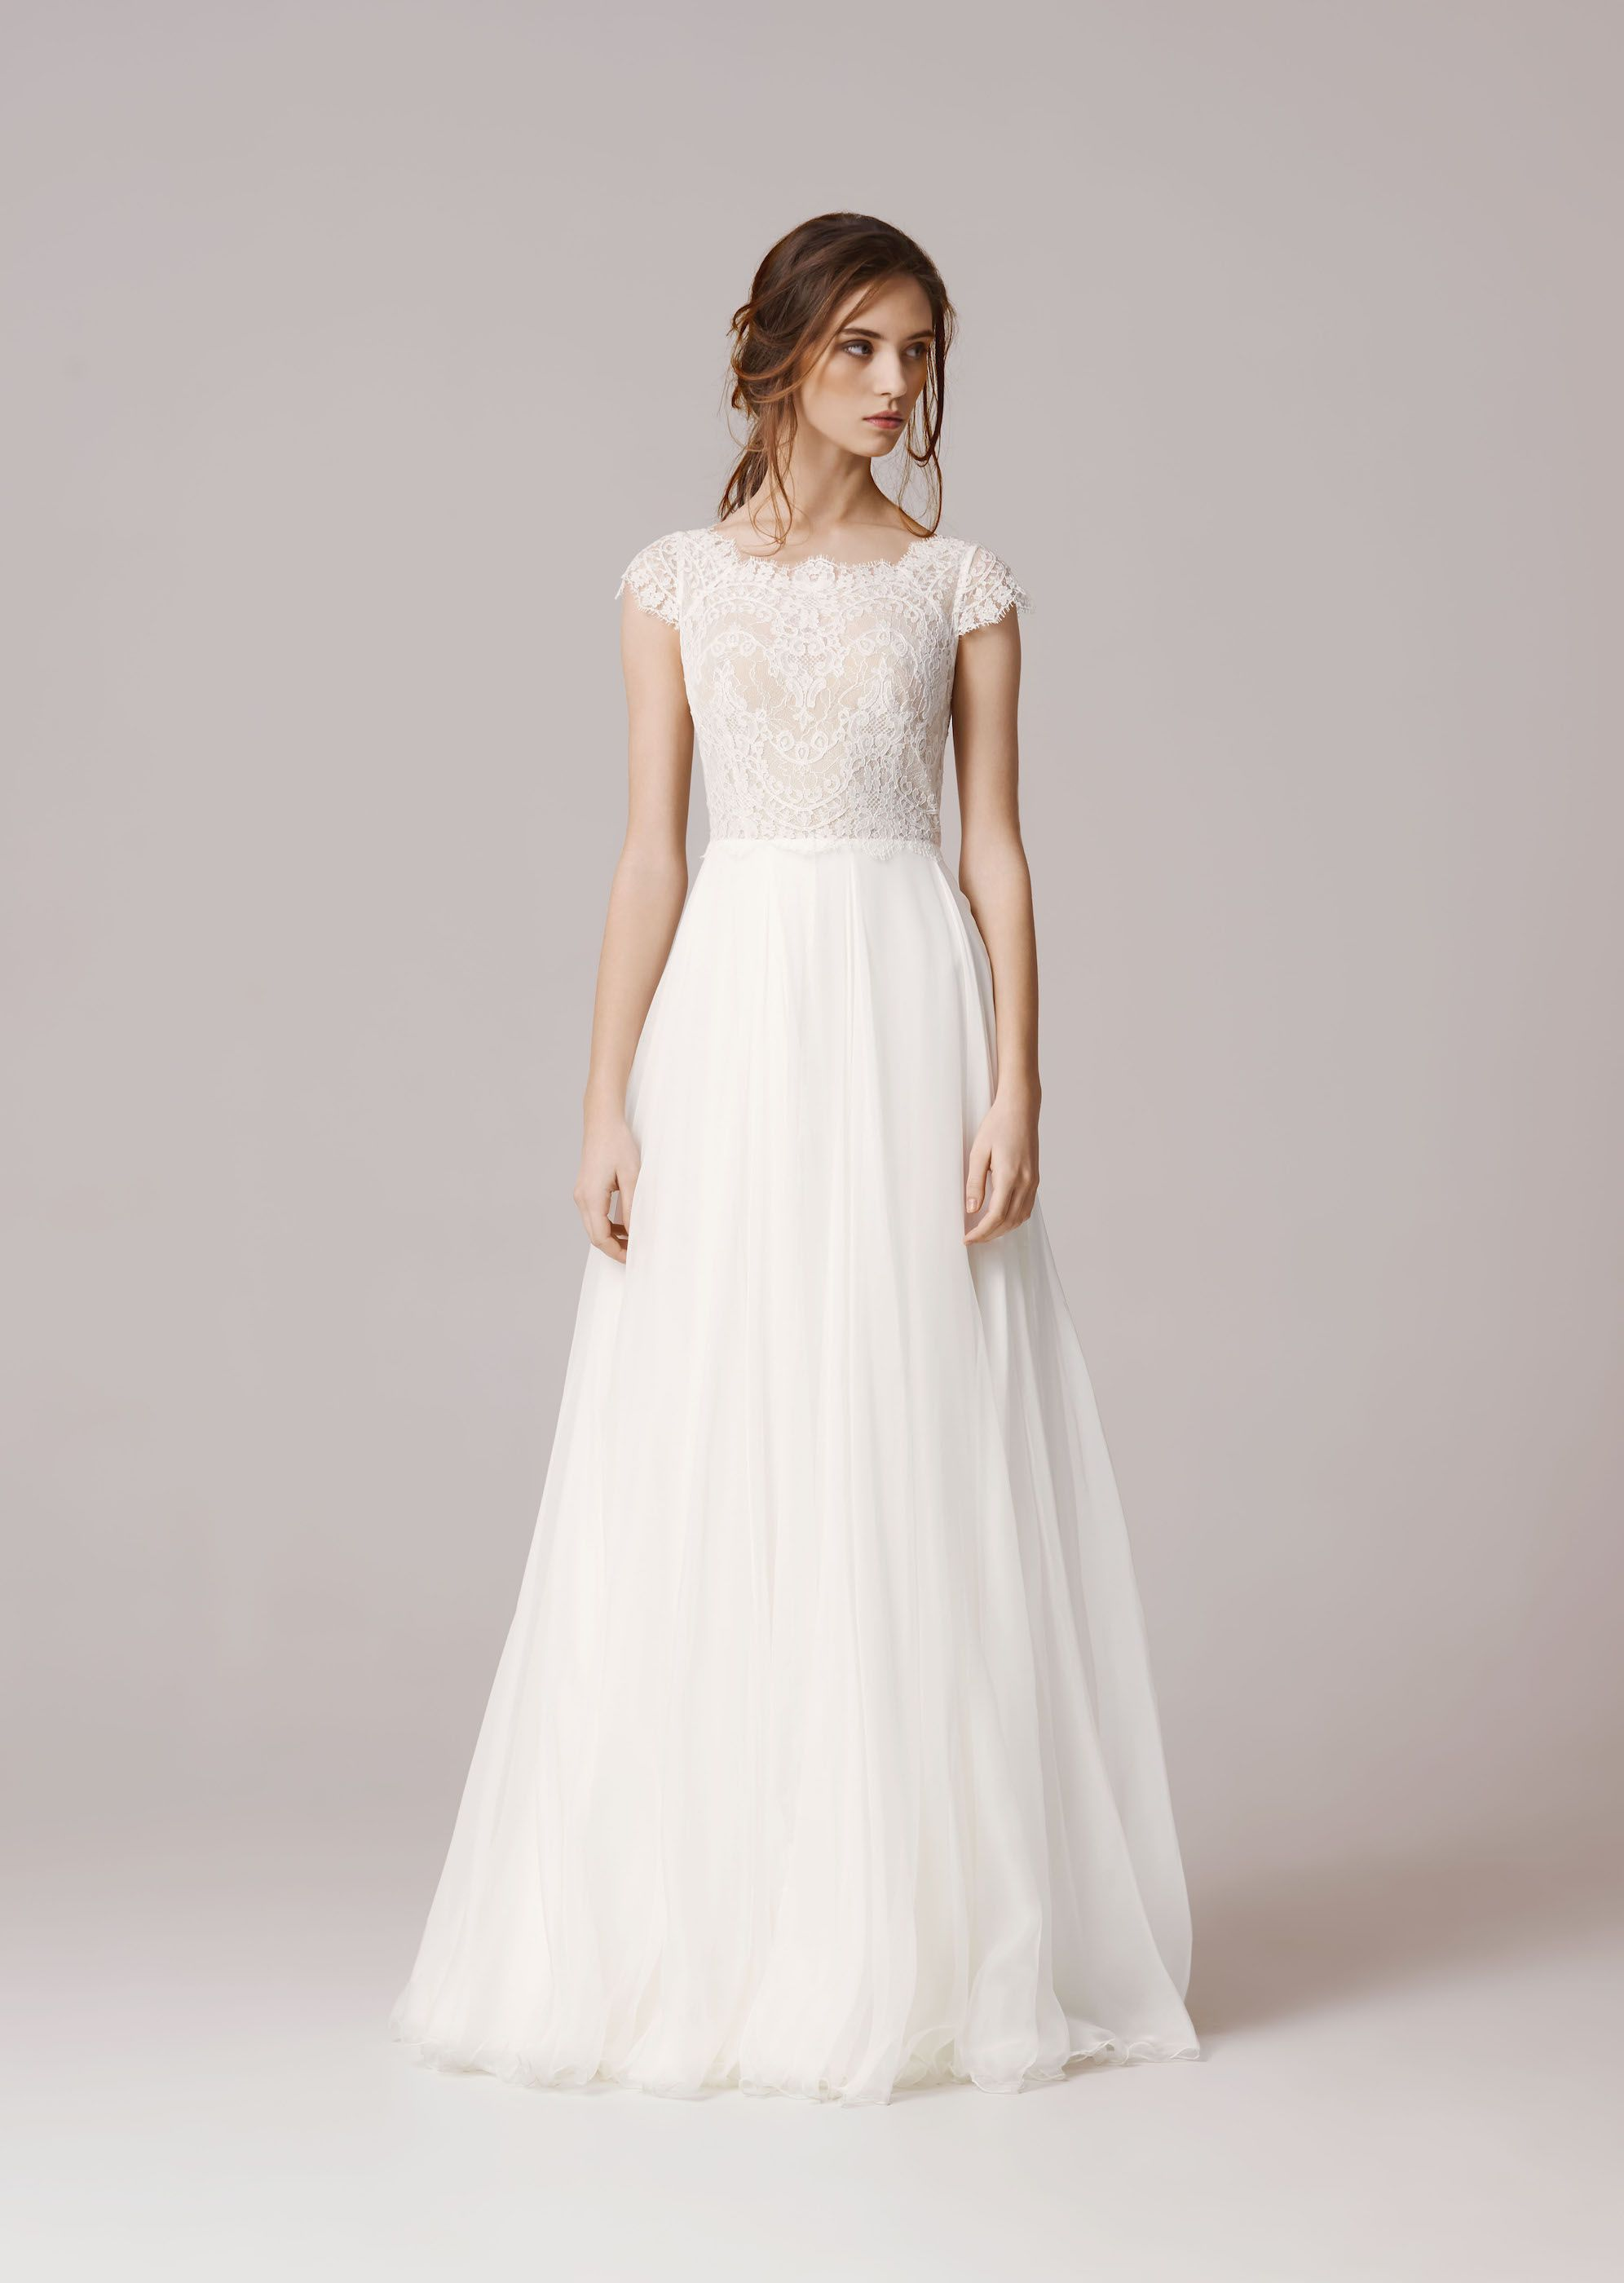 Anna Kara – THEA front - costs 1900 Euros | Wedding Dresses ...